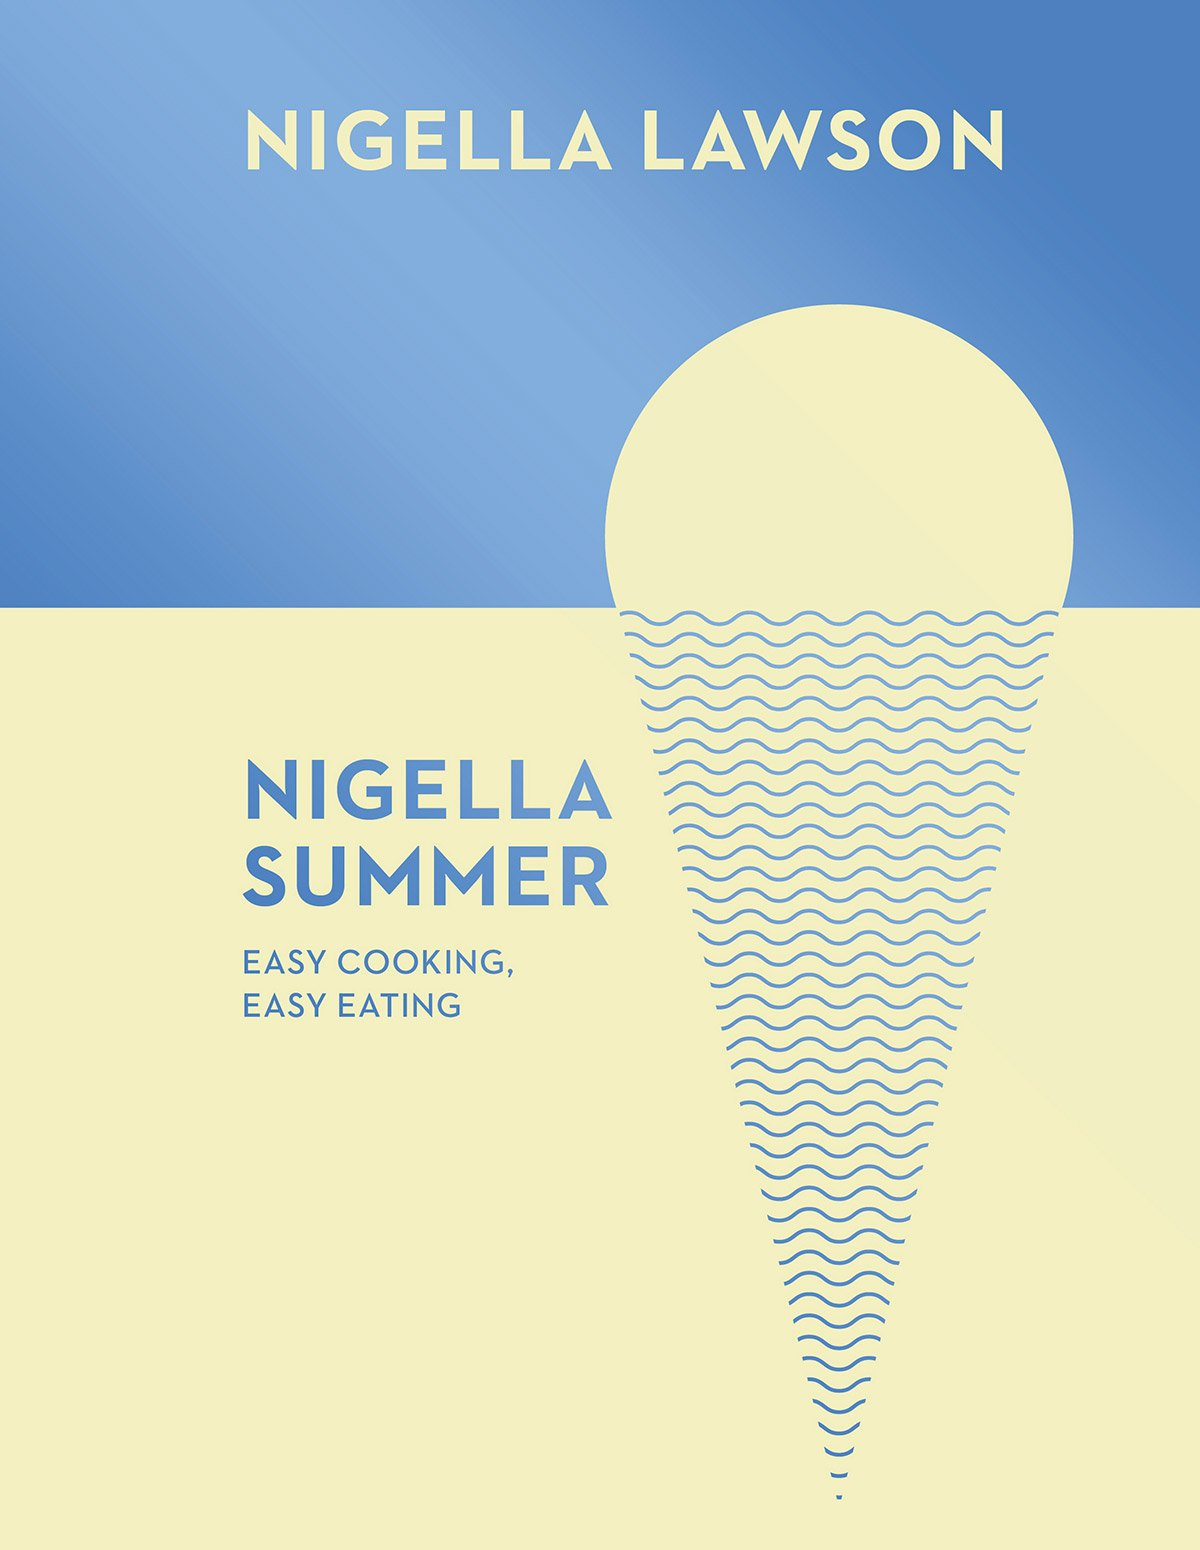 NIGELLA SUMMER - United Kingdom